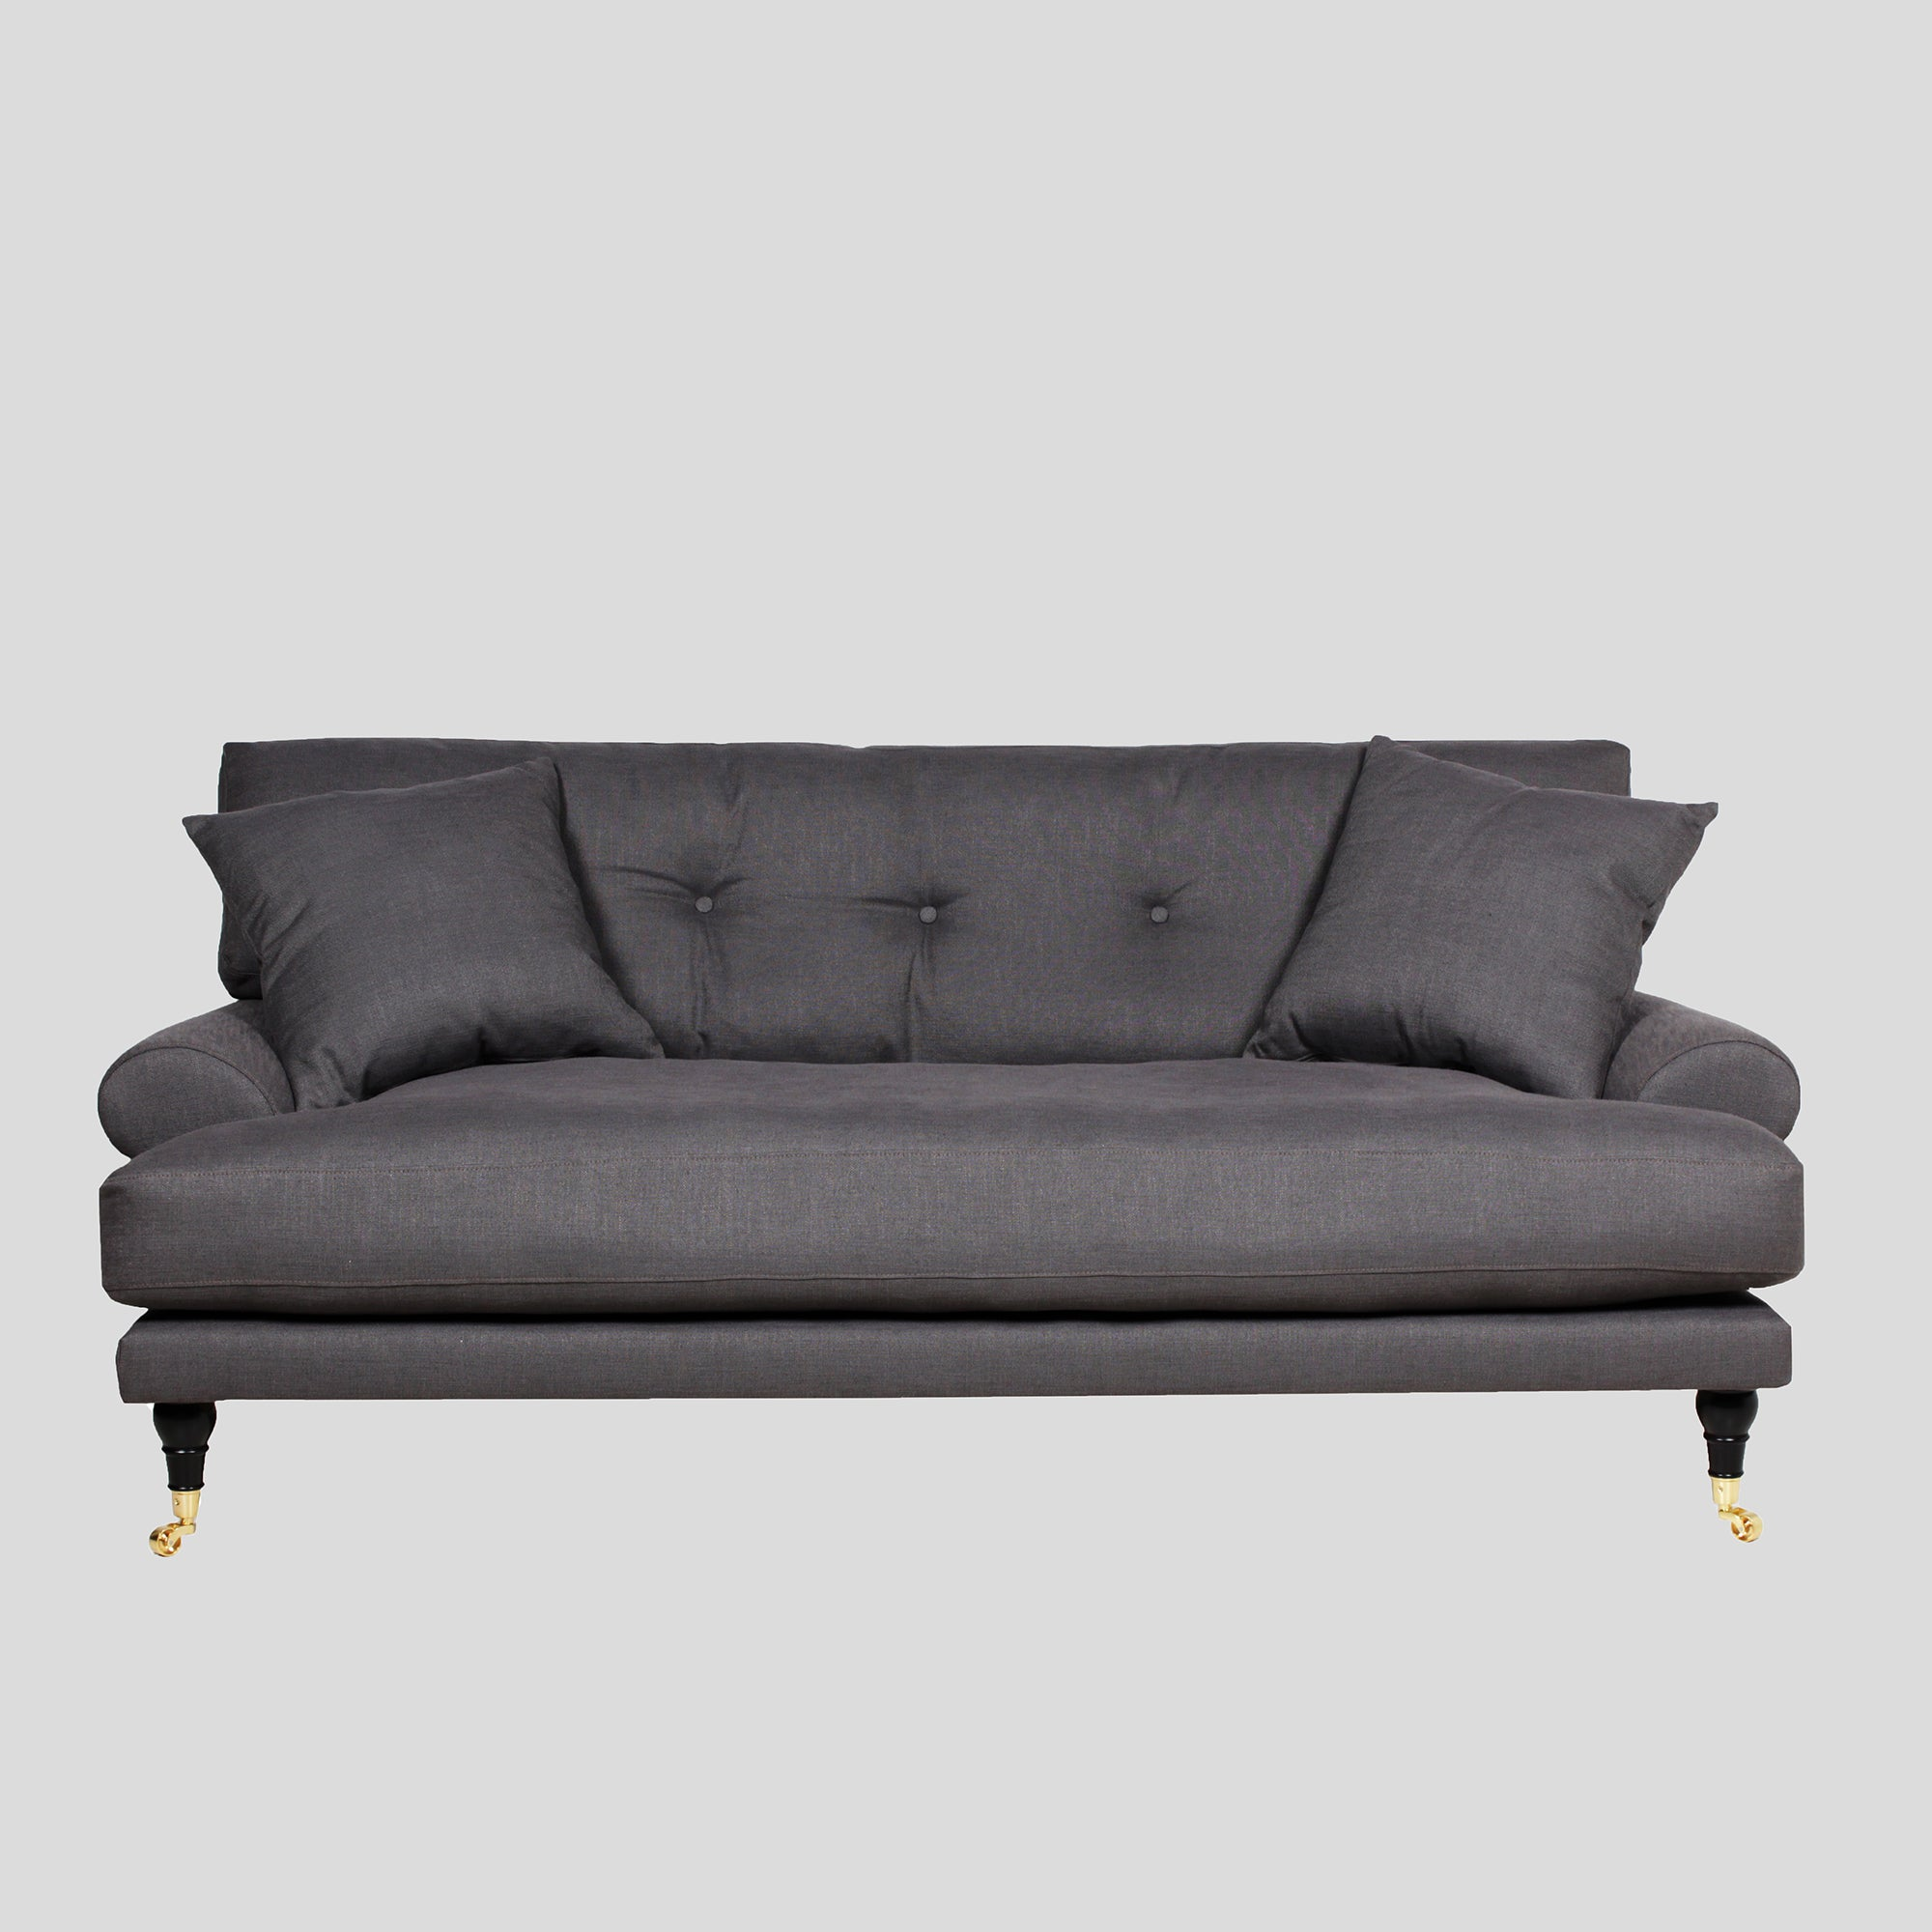 Blanca dark grey linen sofa